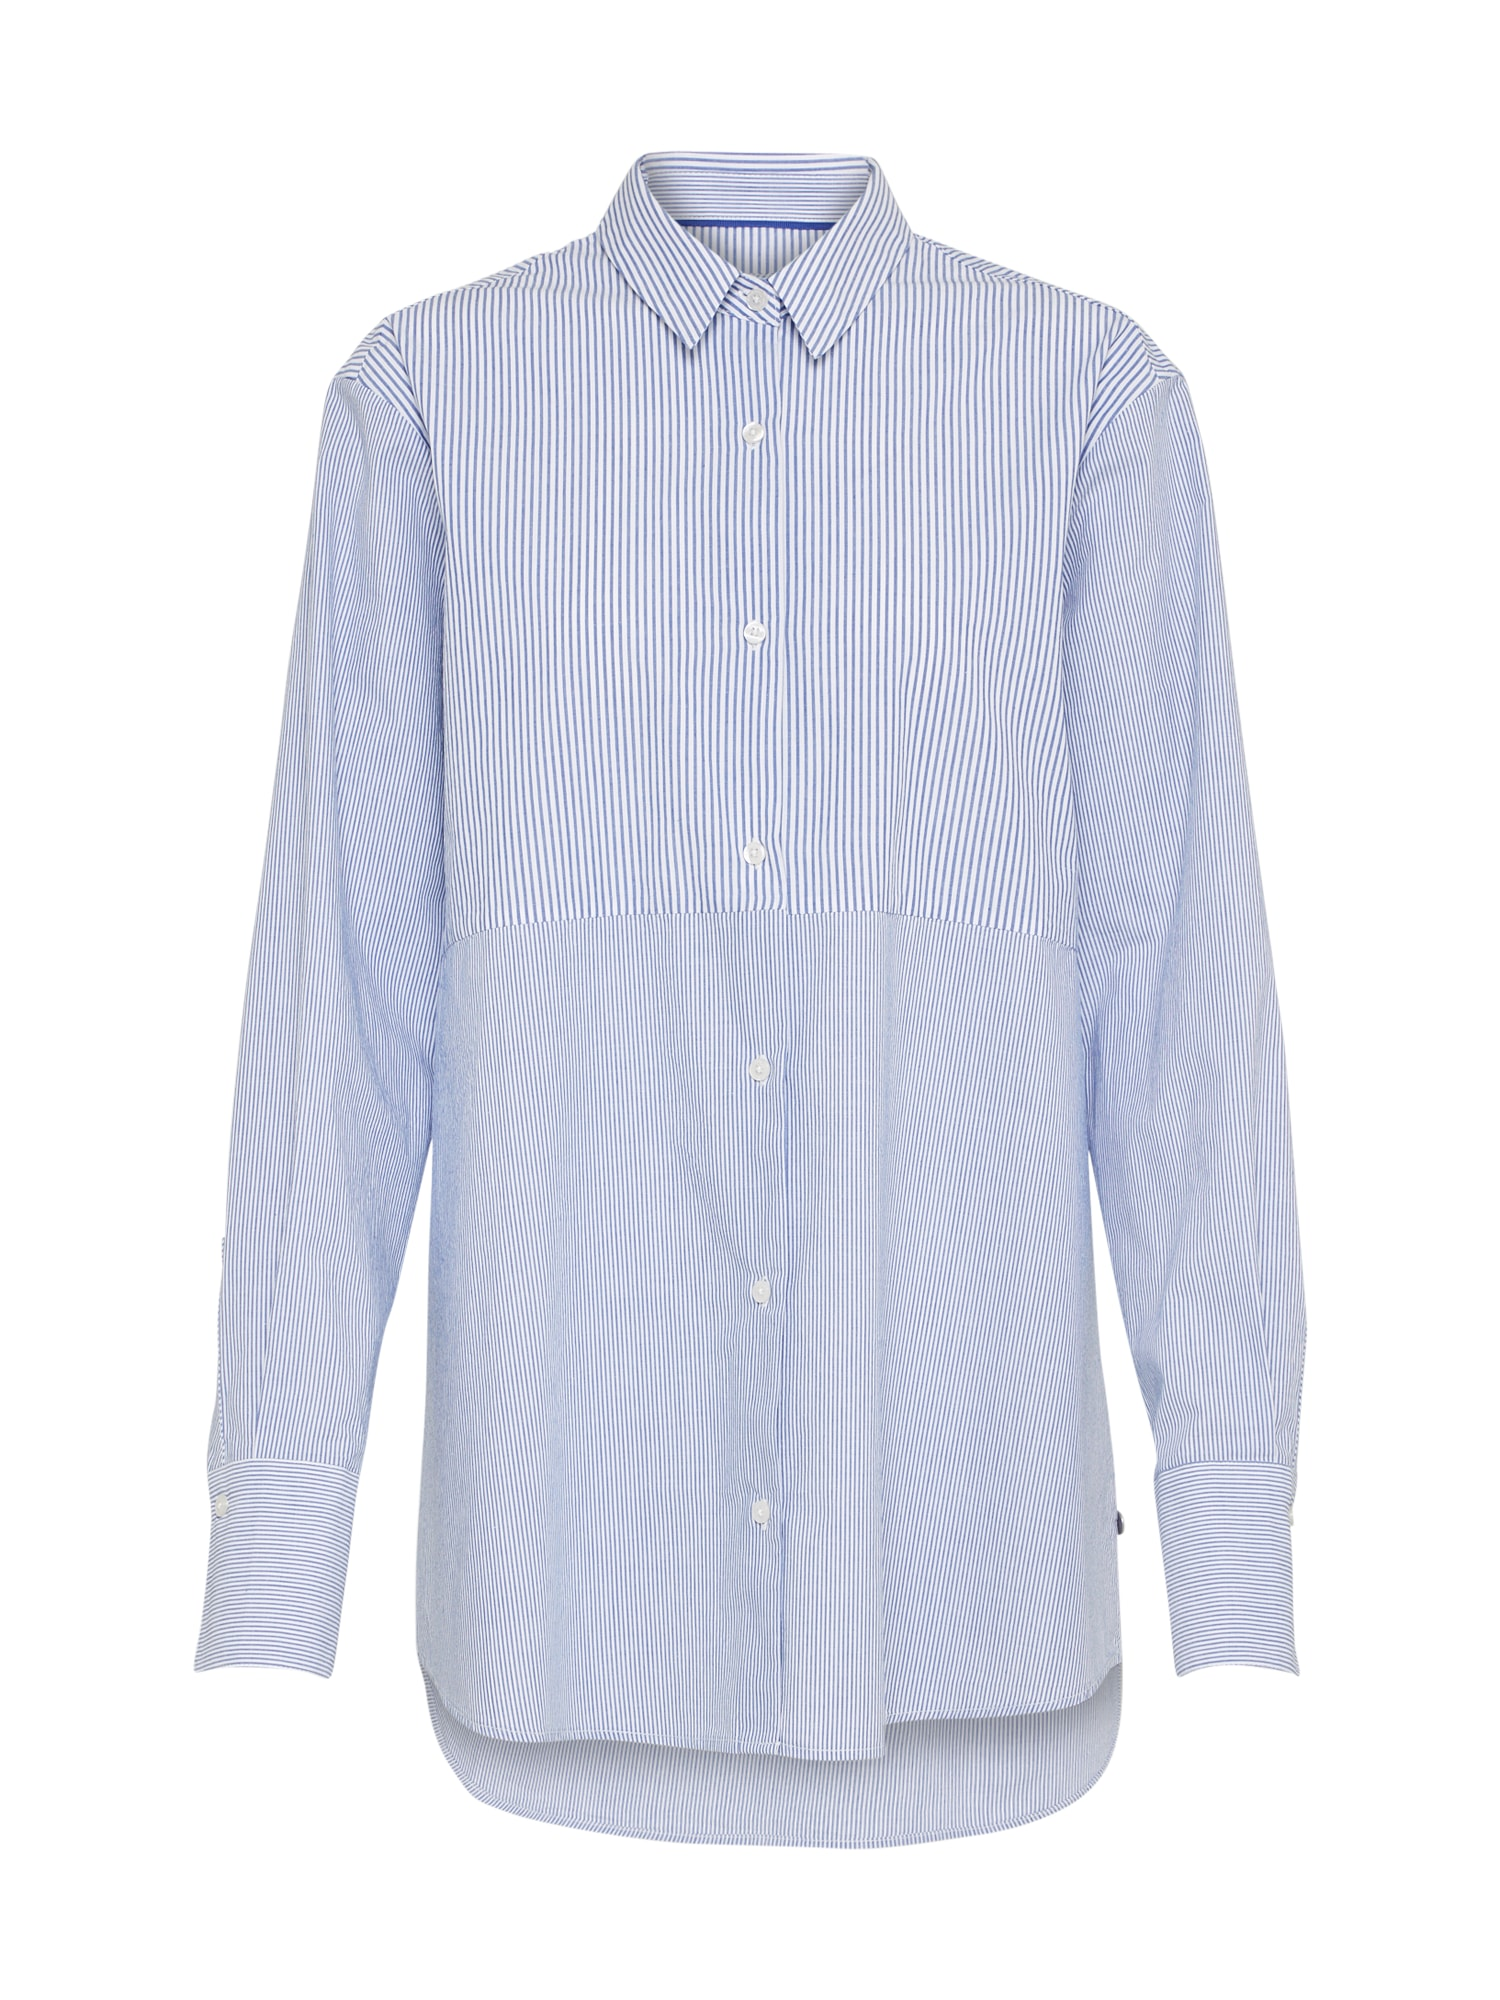 Pepe Jeans Dames Blouse OEIL blauw wit